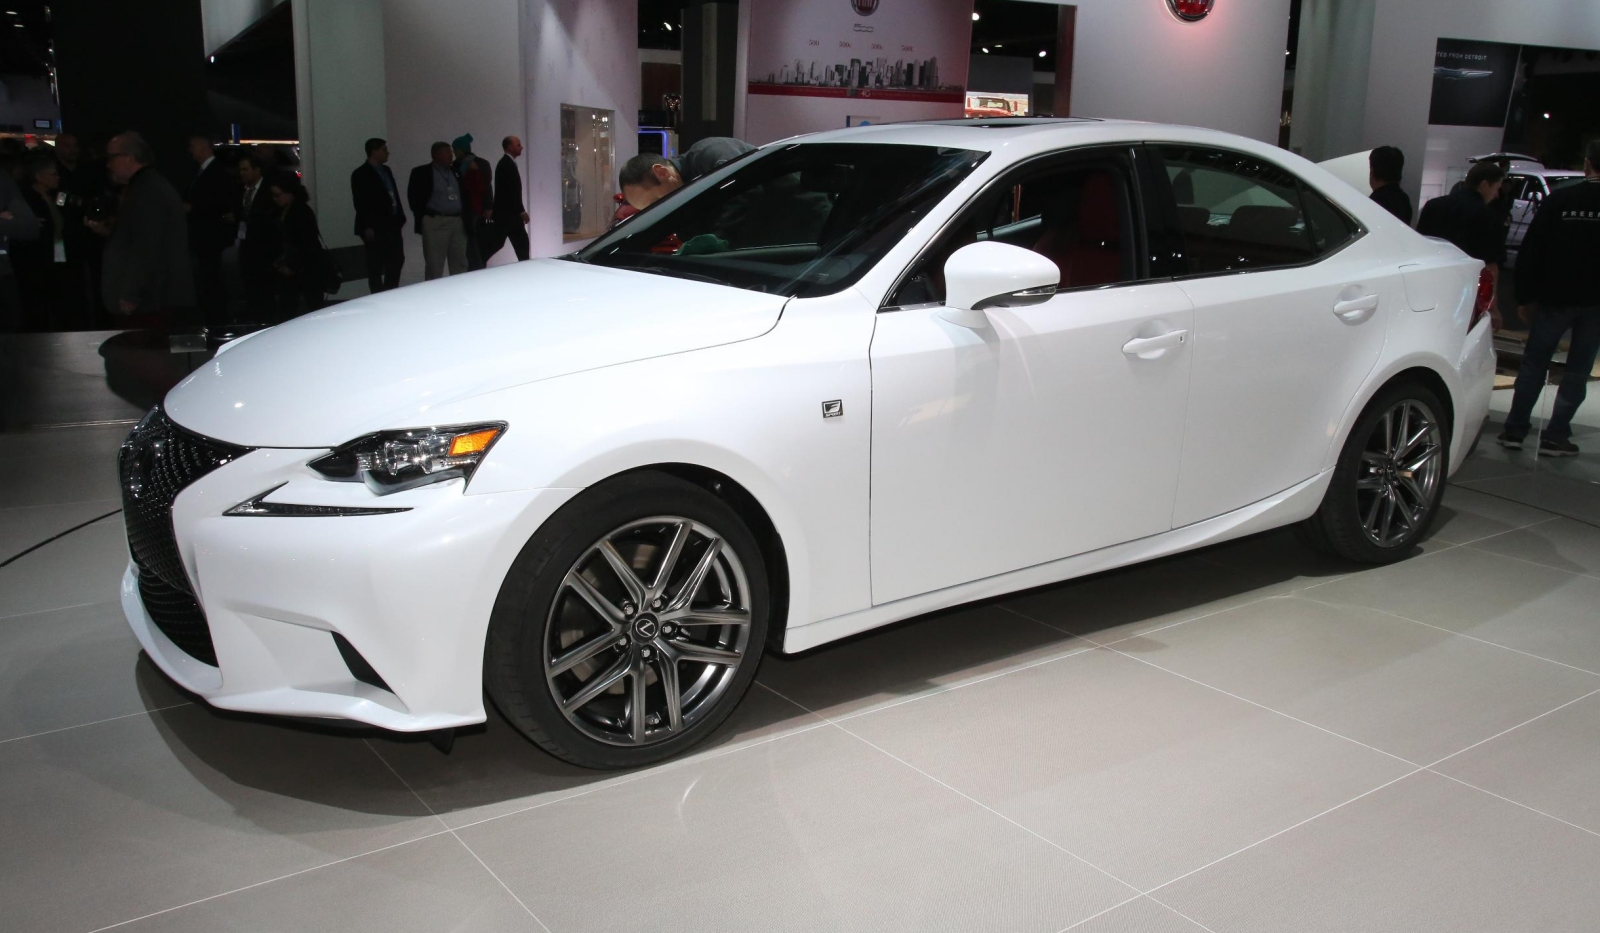 2013 Lexus Is F #1